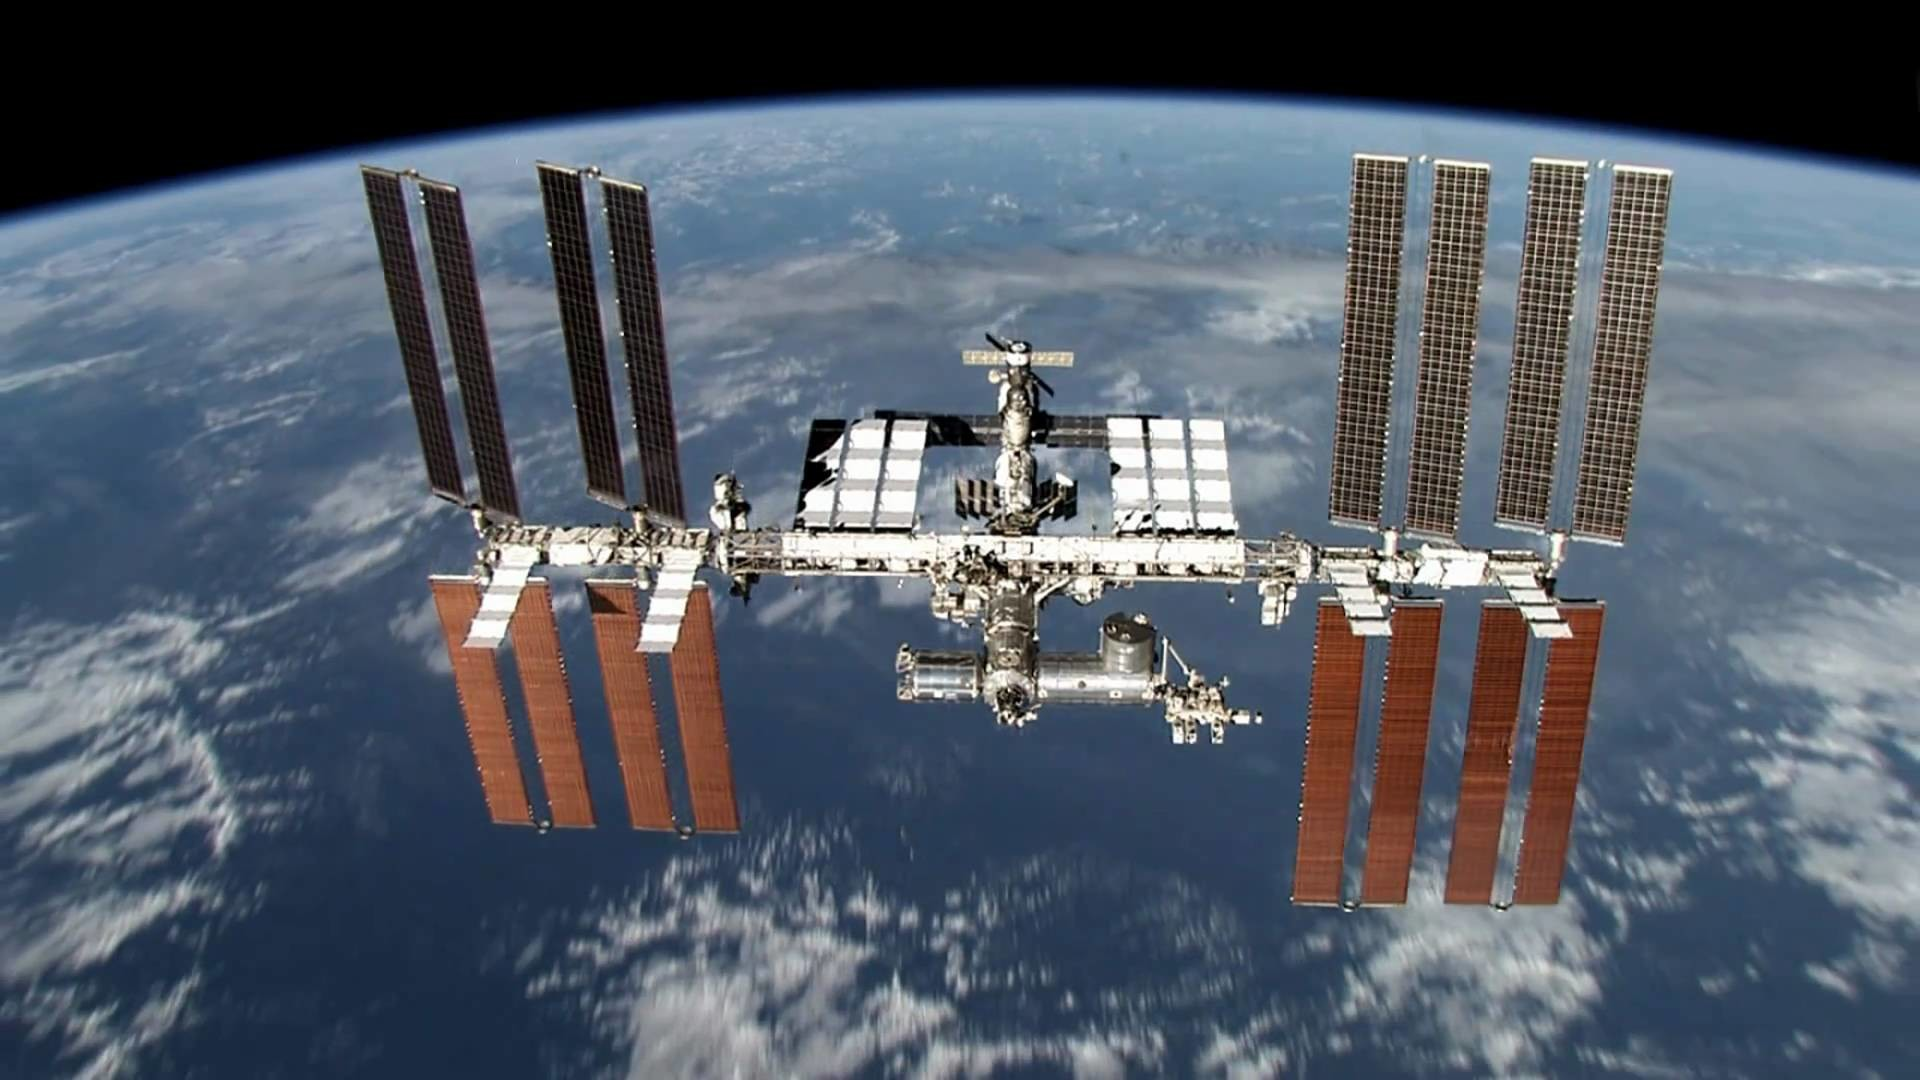 1920x1080 Futuristic space station hd wallpaper  id21949 | Chainimage |  IMAGINARIUM | Pinterest | Space station, Hd wallpaper and Wallpaper